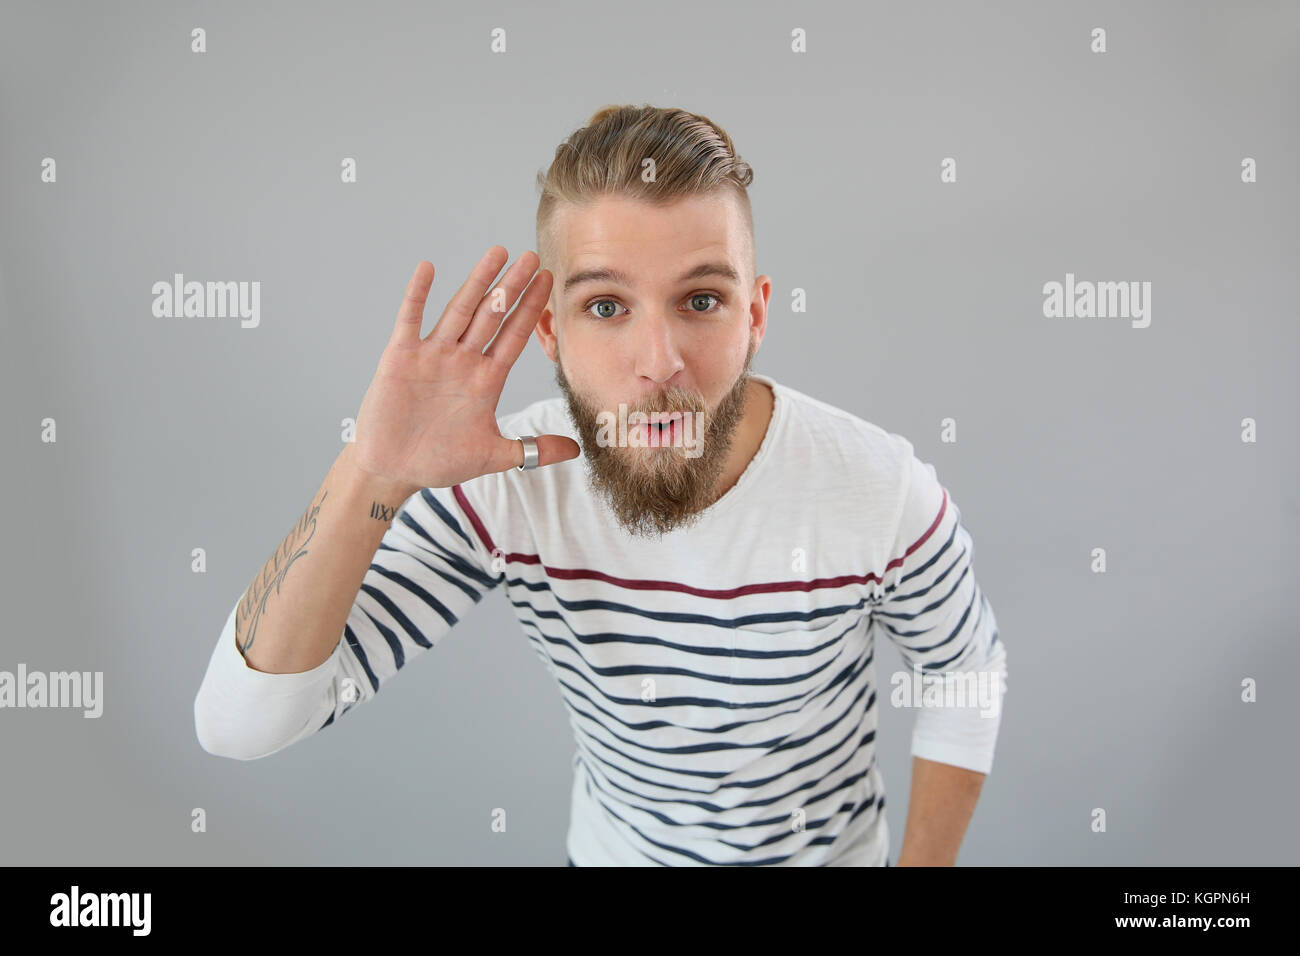 Man with astonished look, isolated - Stock Image